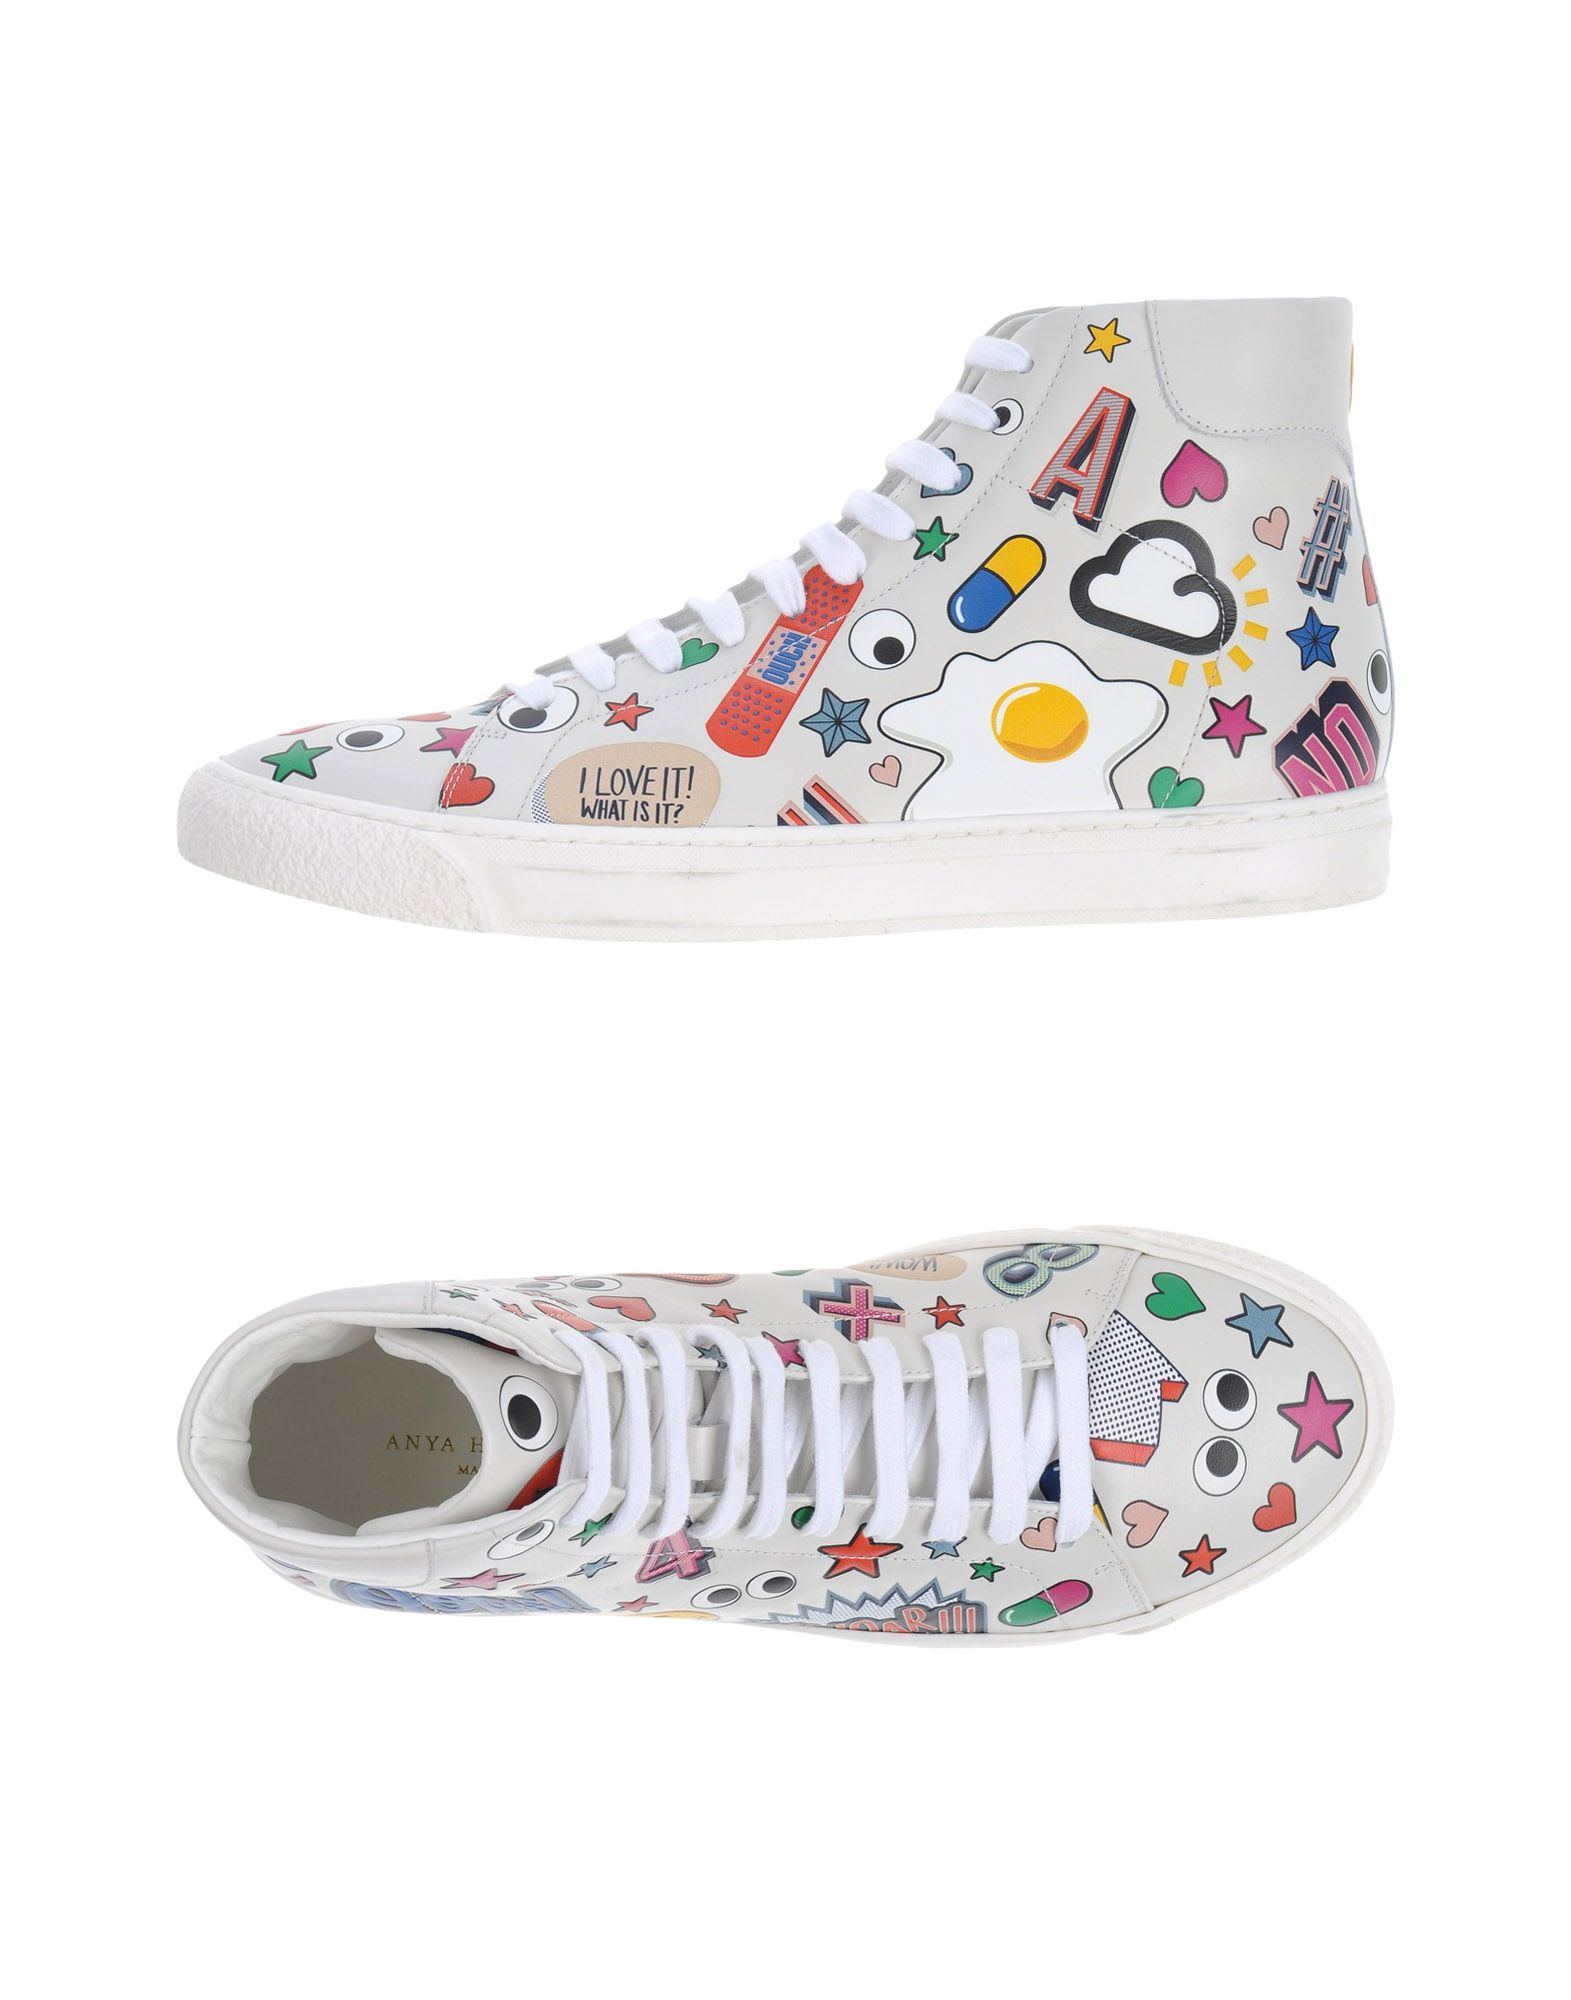 Sneakers Anya Hindmarch Donna - Acquista online su